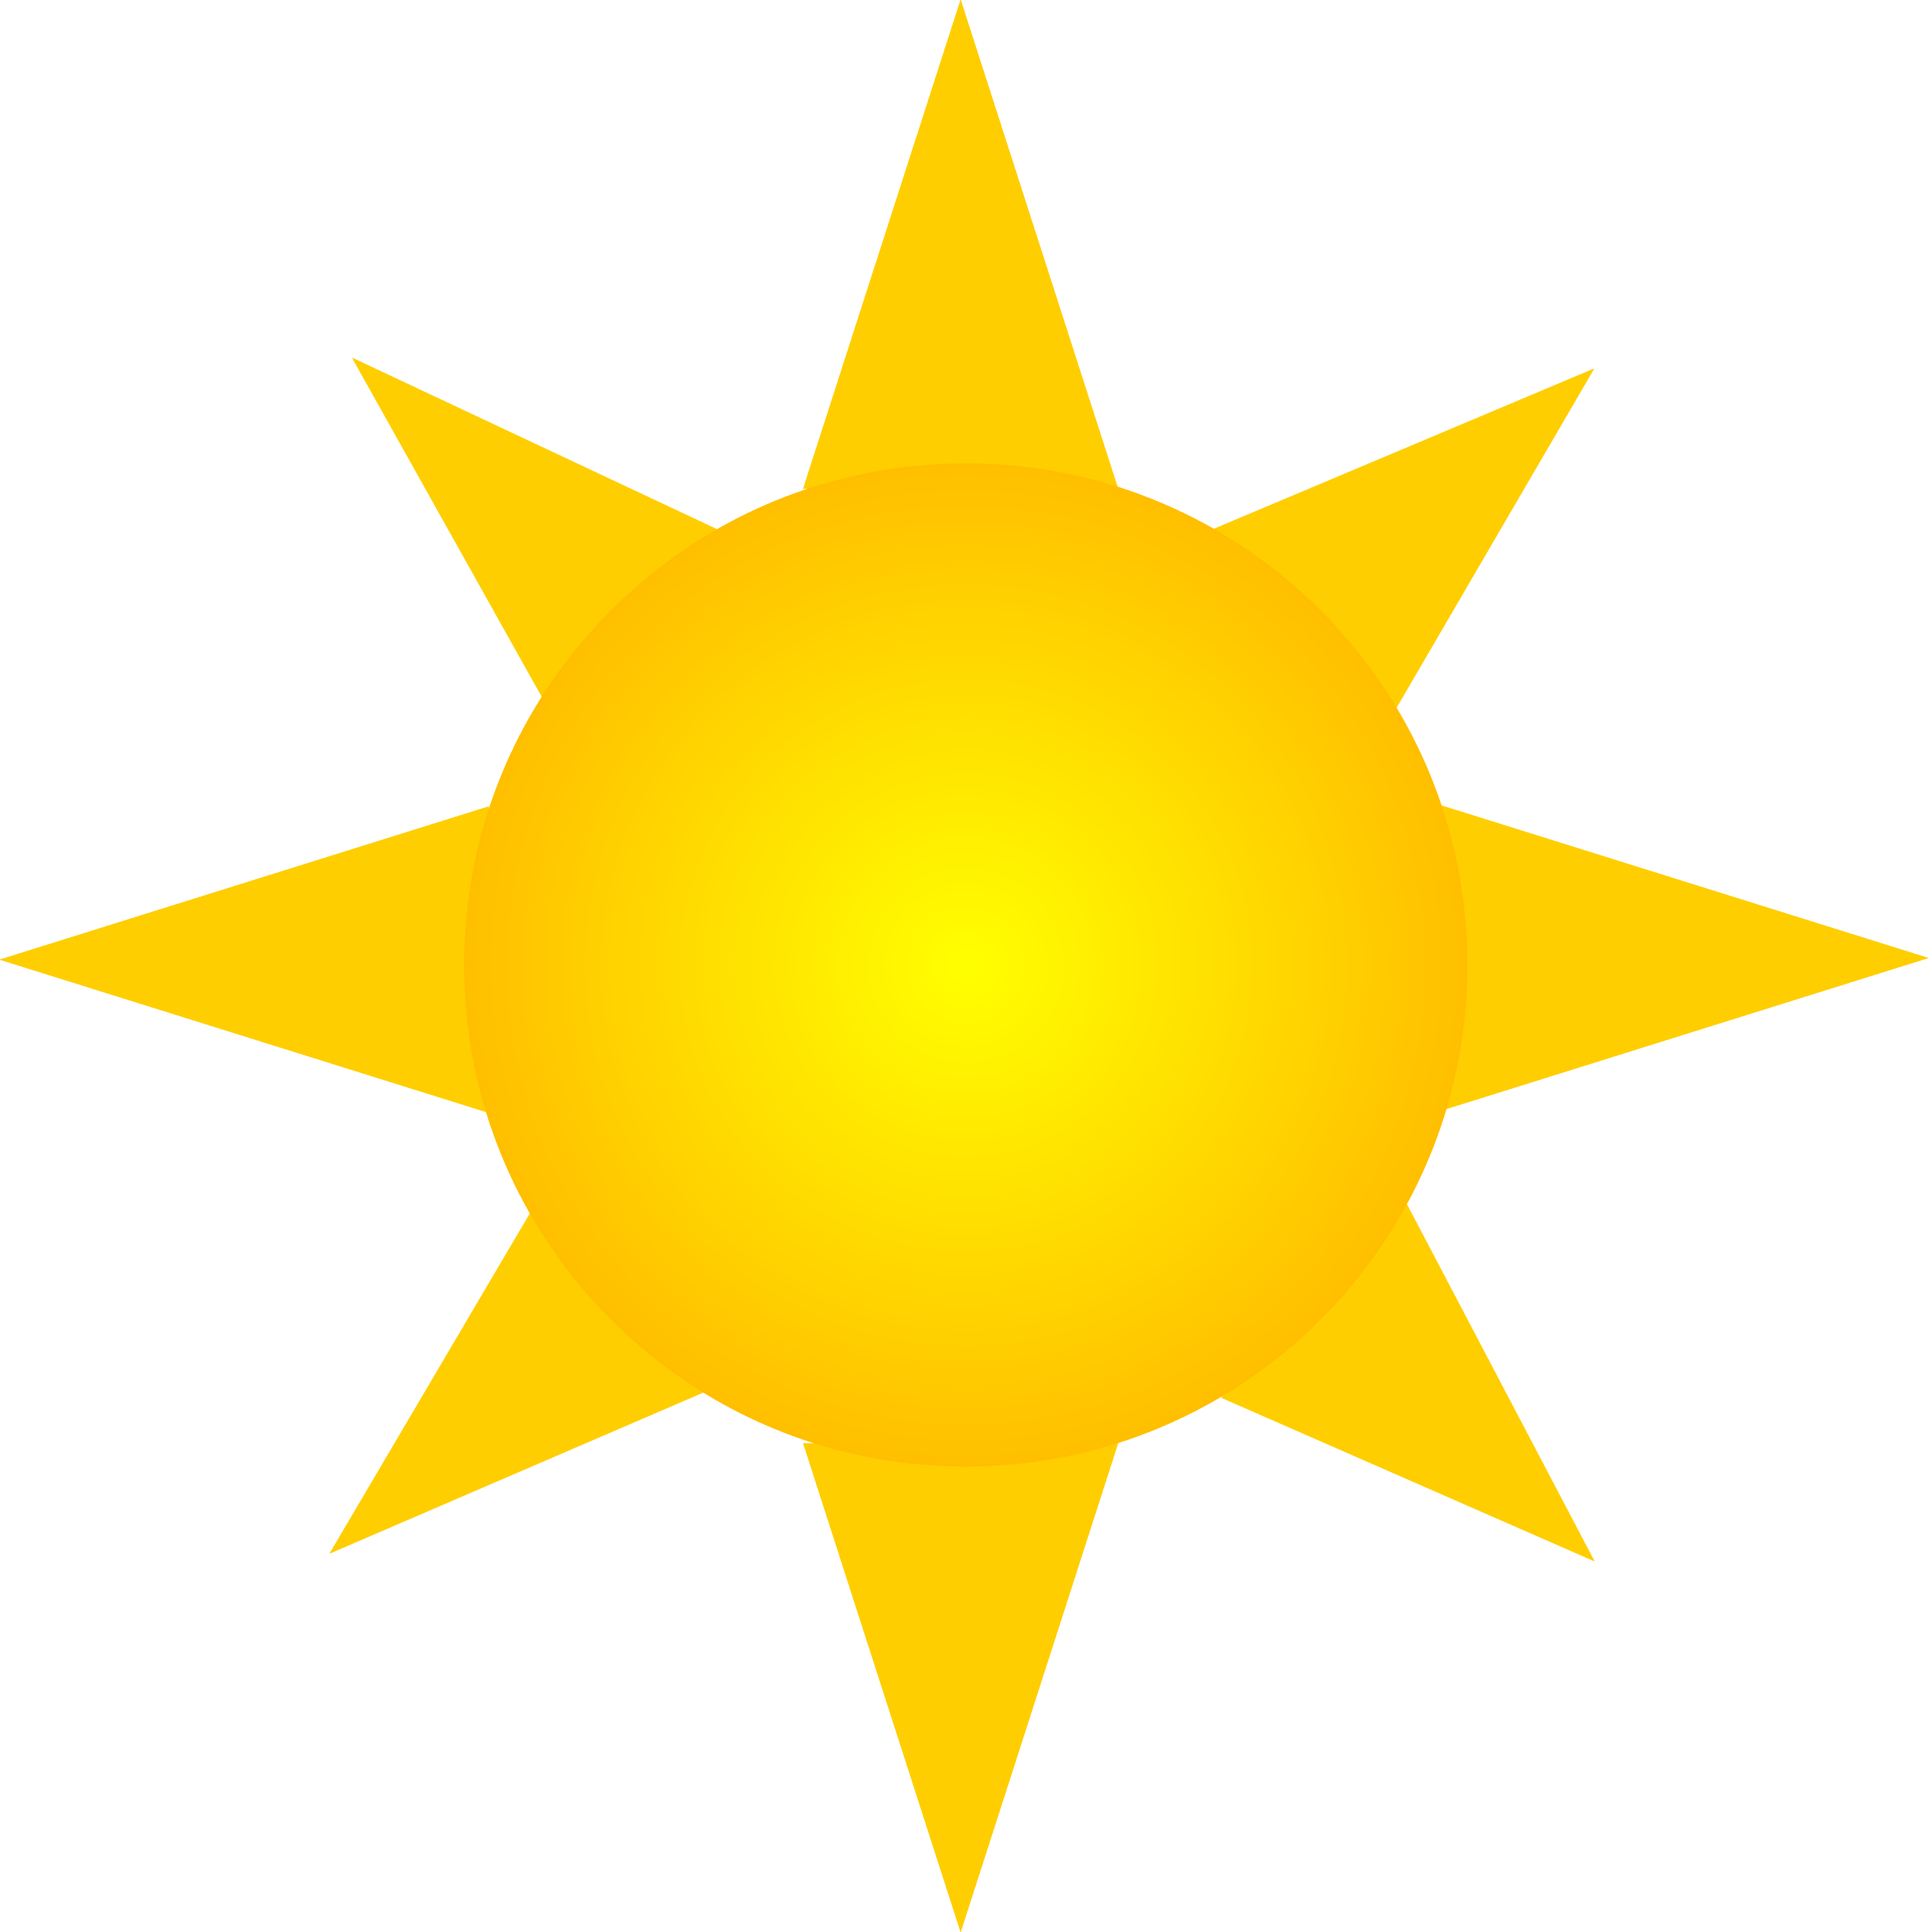 Golden sun clipart clip royalty free download Sun Symbol - Version Two - Free Clip Art clip royalty free download